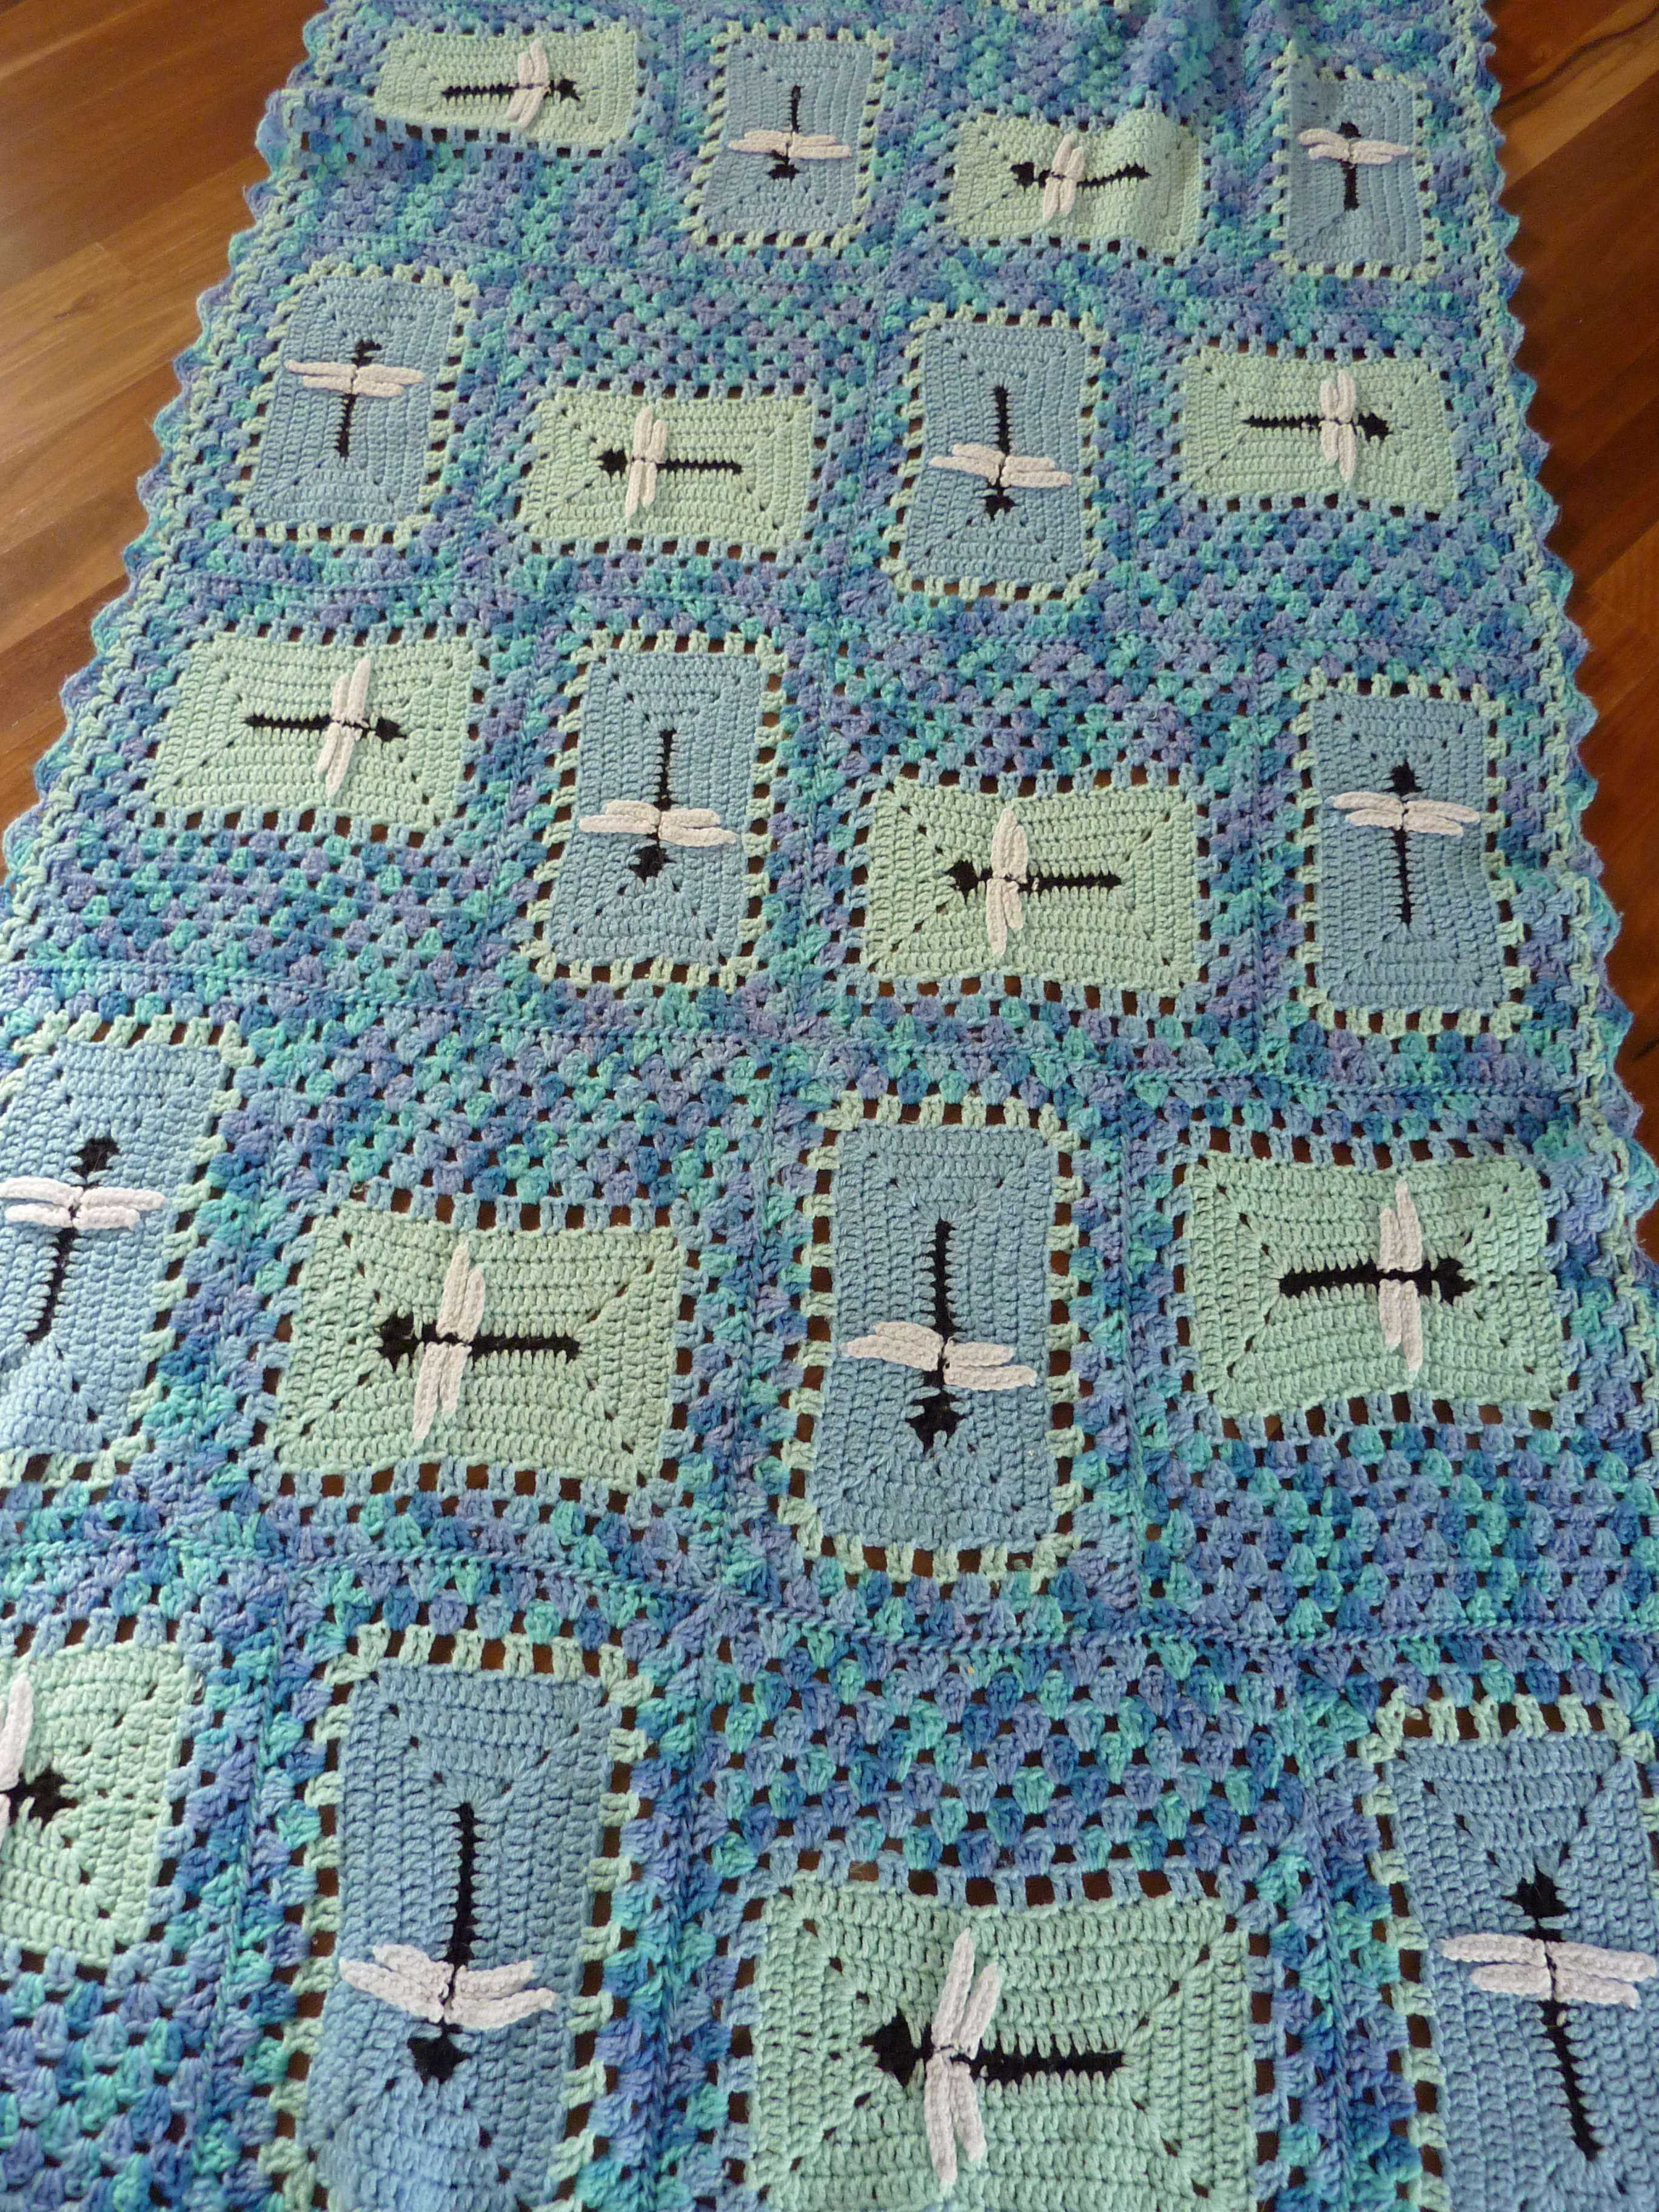 Dragonfly Crochet Pattern Awesome Crochet Dragonfly Afghan Throw Of Luxury 46 Pictures Dragonfly Crochet Pattern